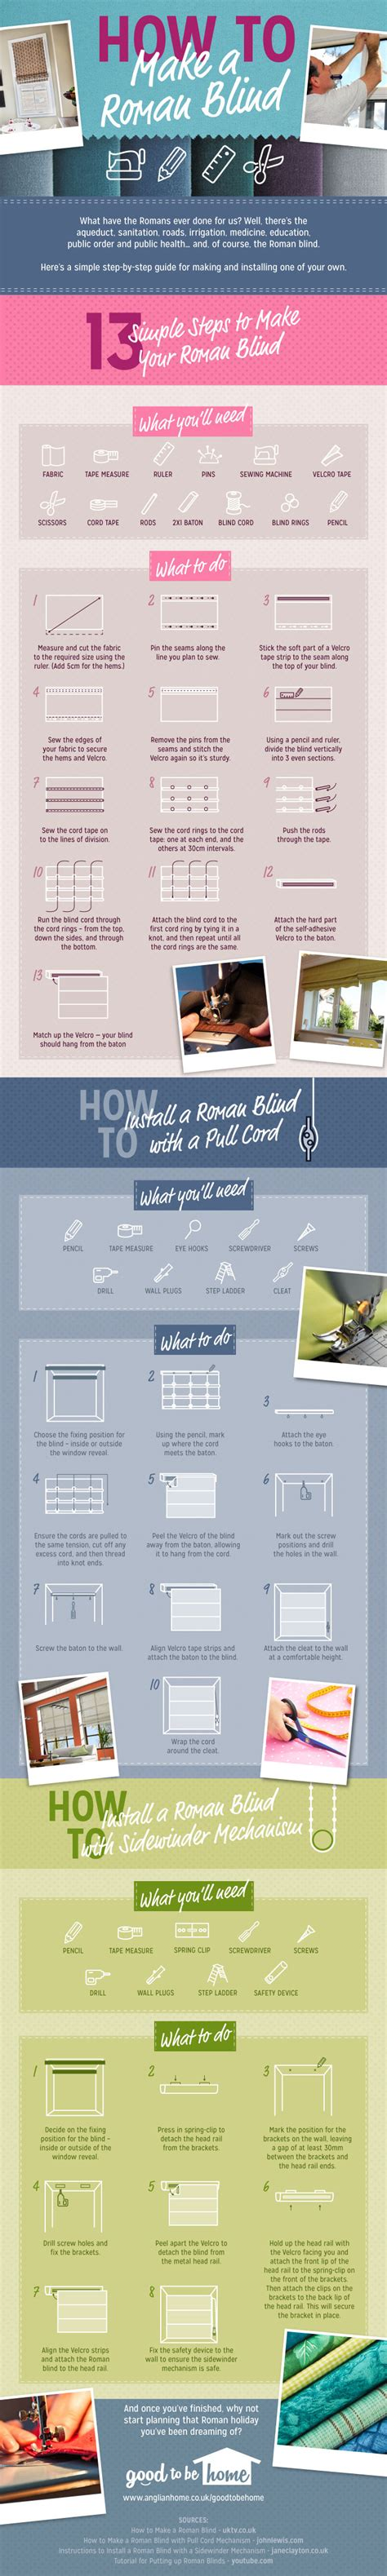 how to a blind how to make a blind a printable step by step guide